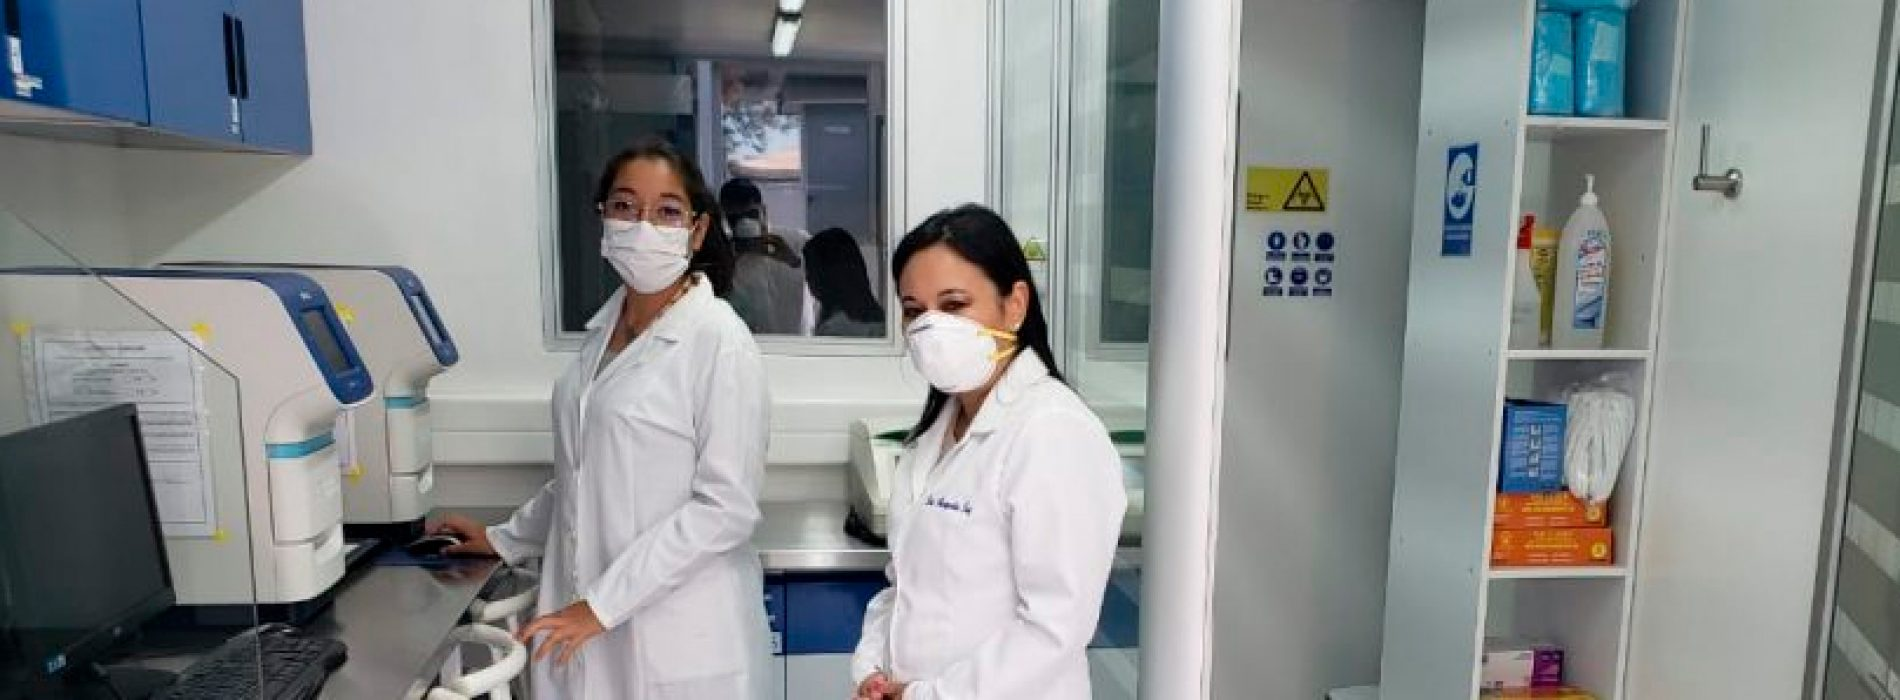 15 universidades reconvierten sus laboratorios para diagnosticar el Covid-19